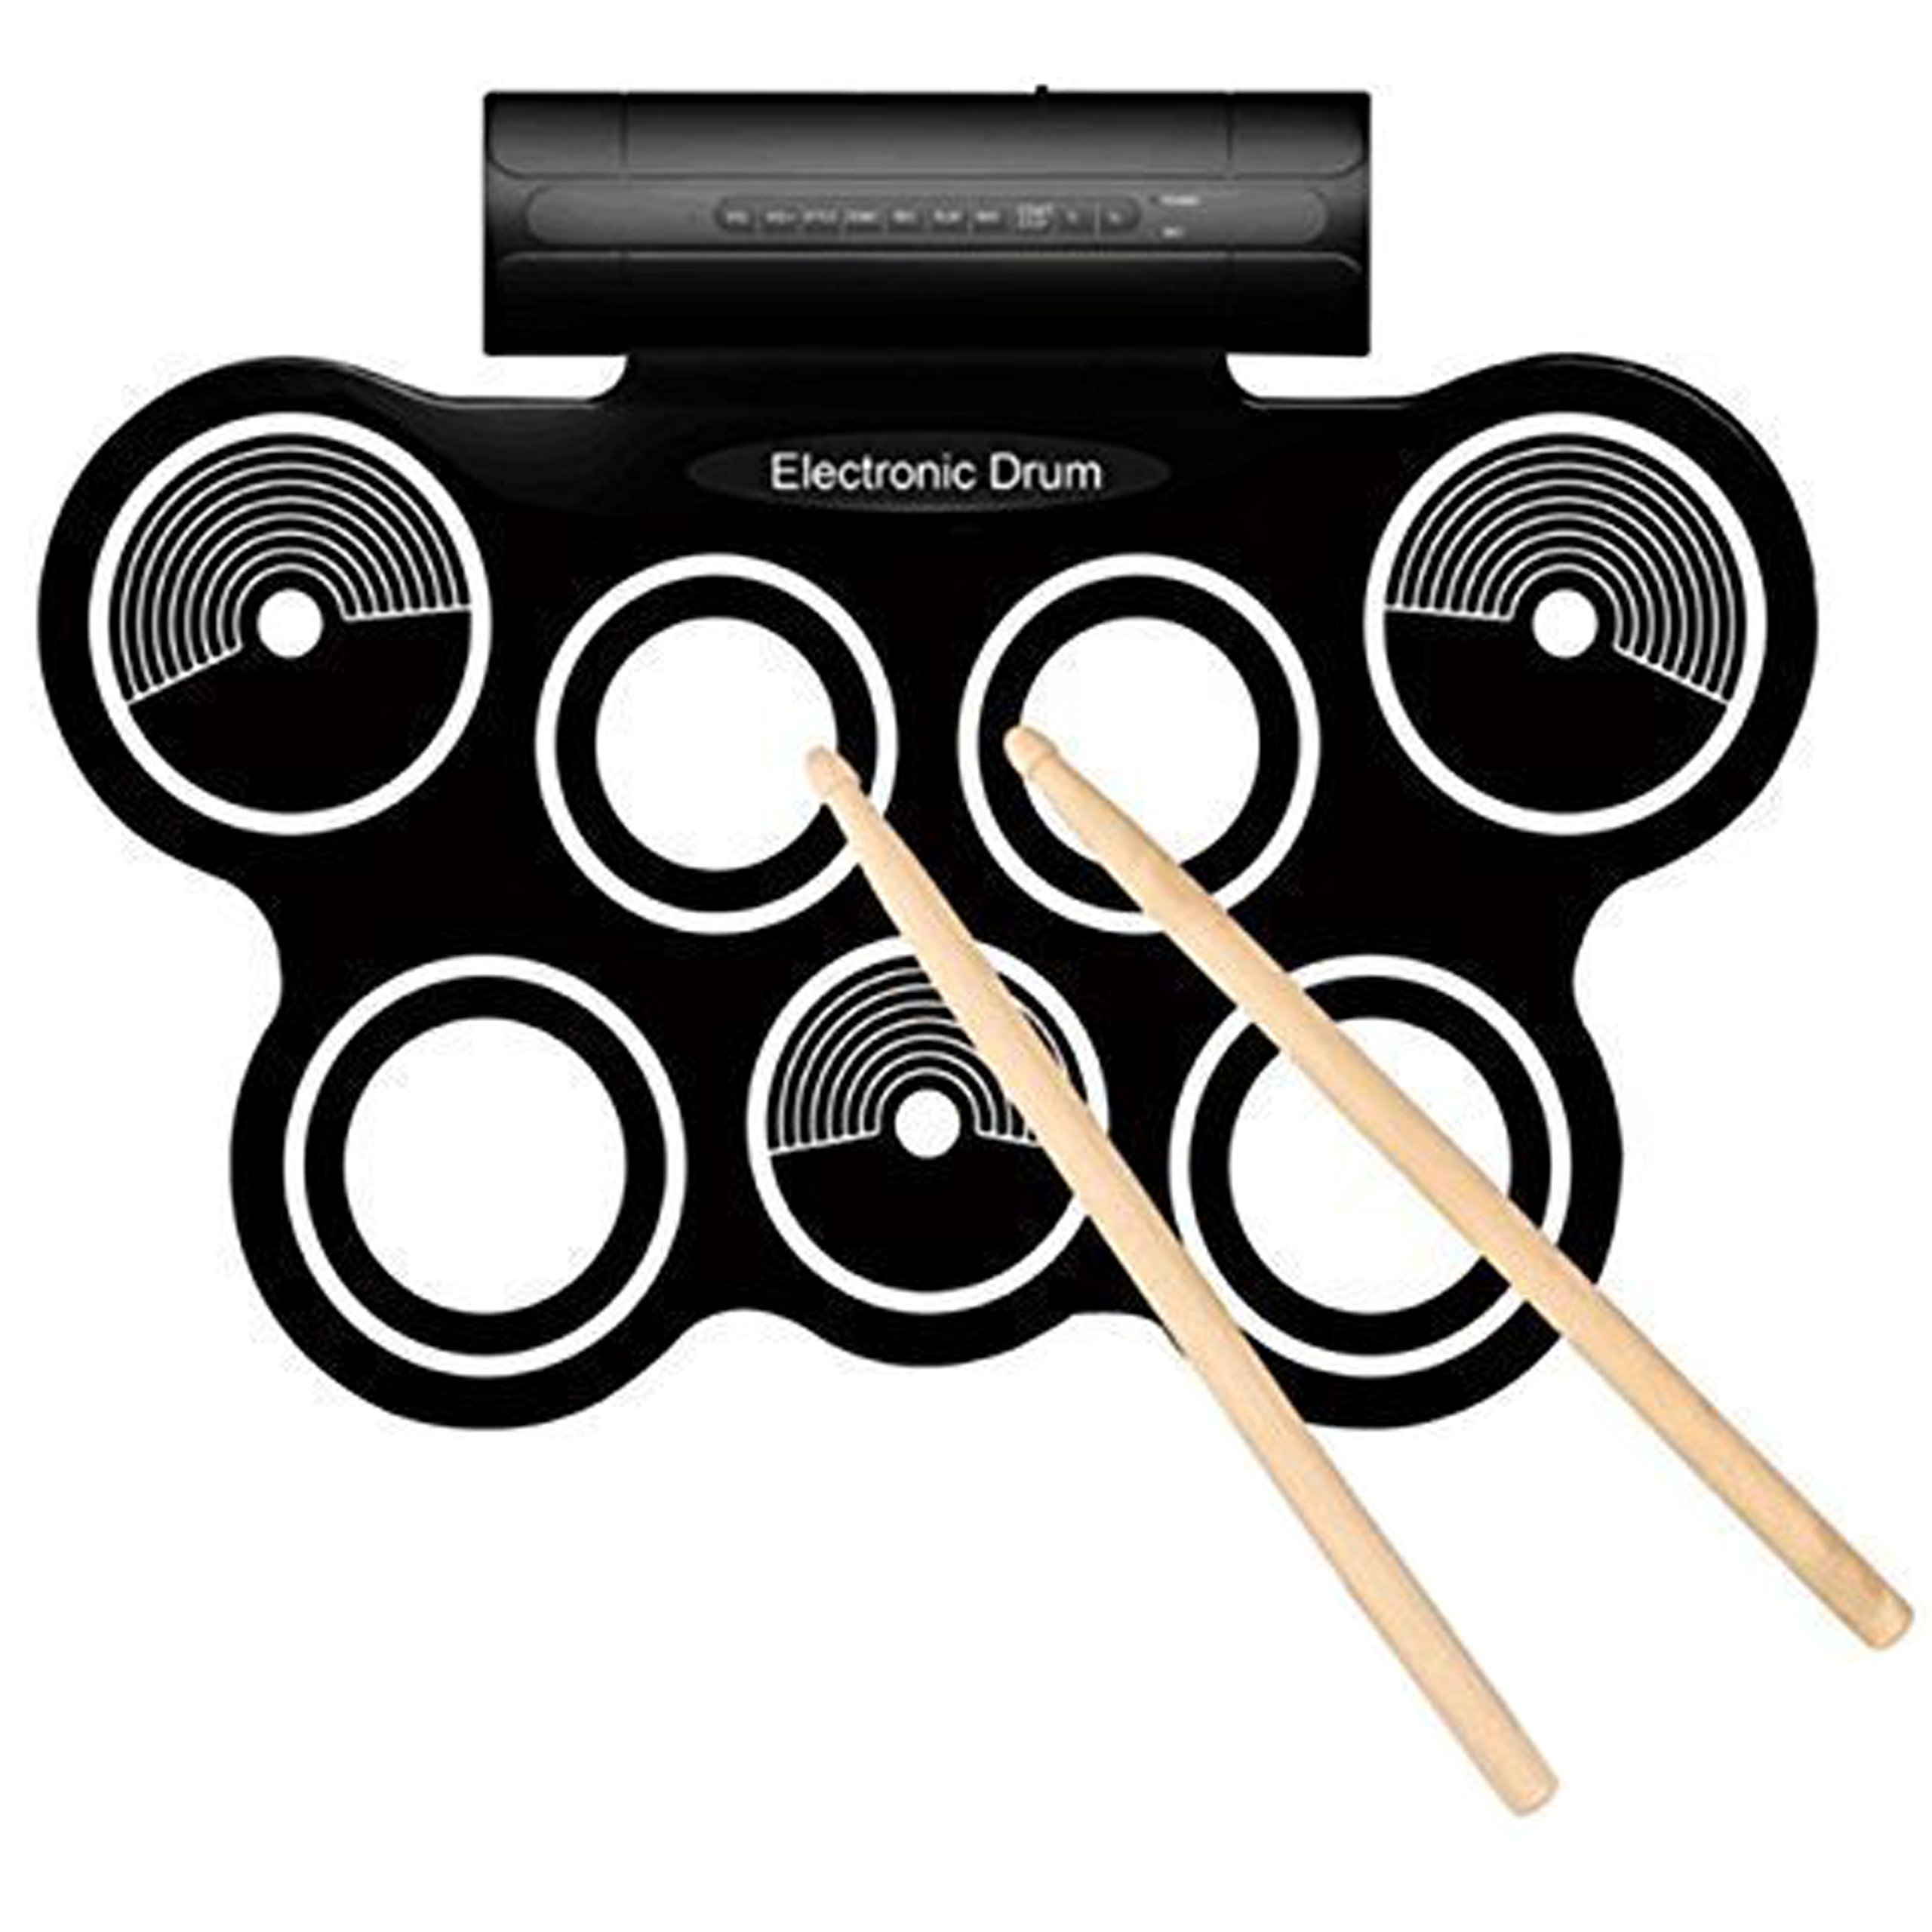 AMAZING Electronic Drum Mat, Includes: 2 Foot Pedals, Built In Speakers, 2 Drumsticks, 12 Demo Songs, Power Supply, Instructions Manual, Plus More!